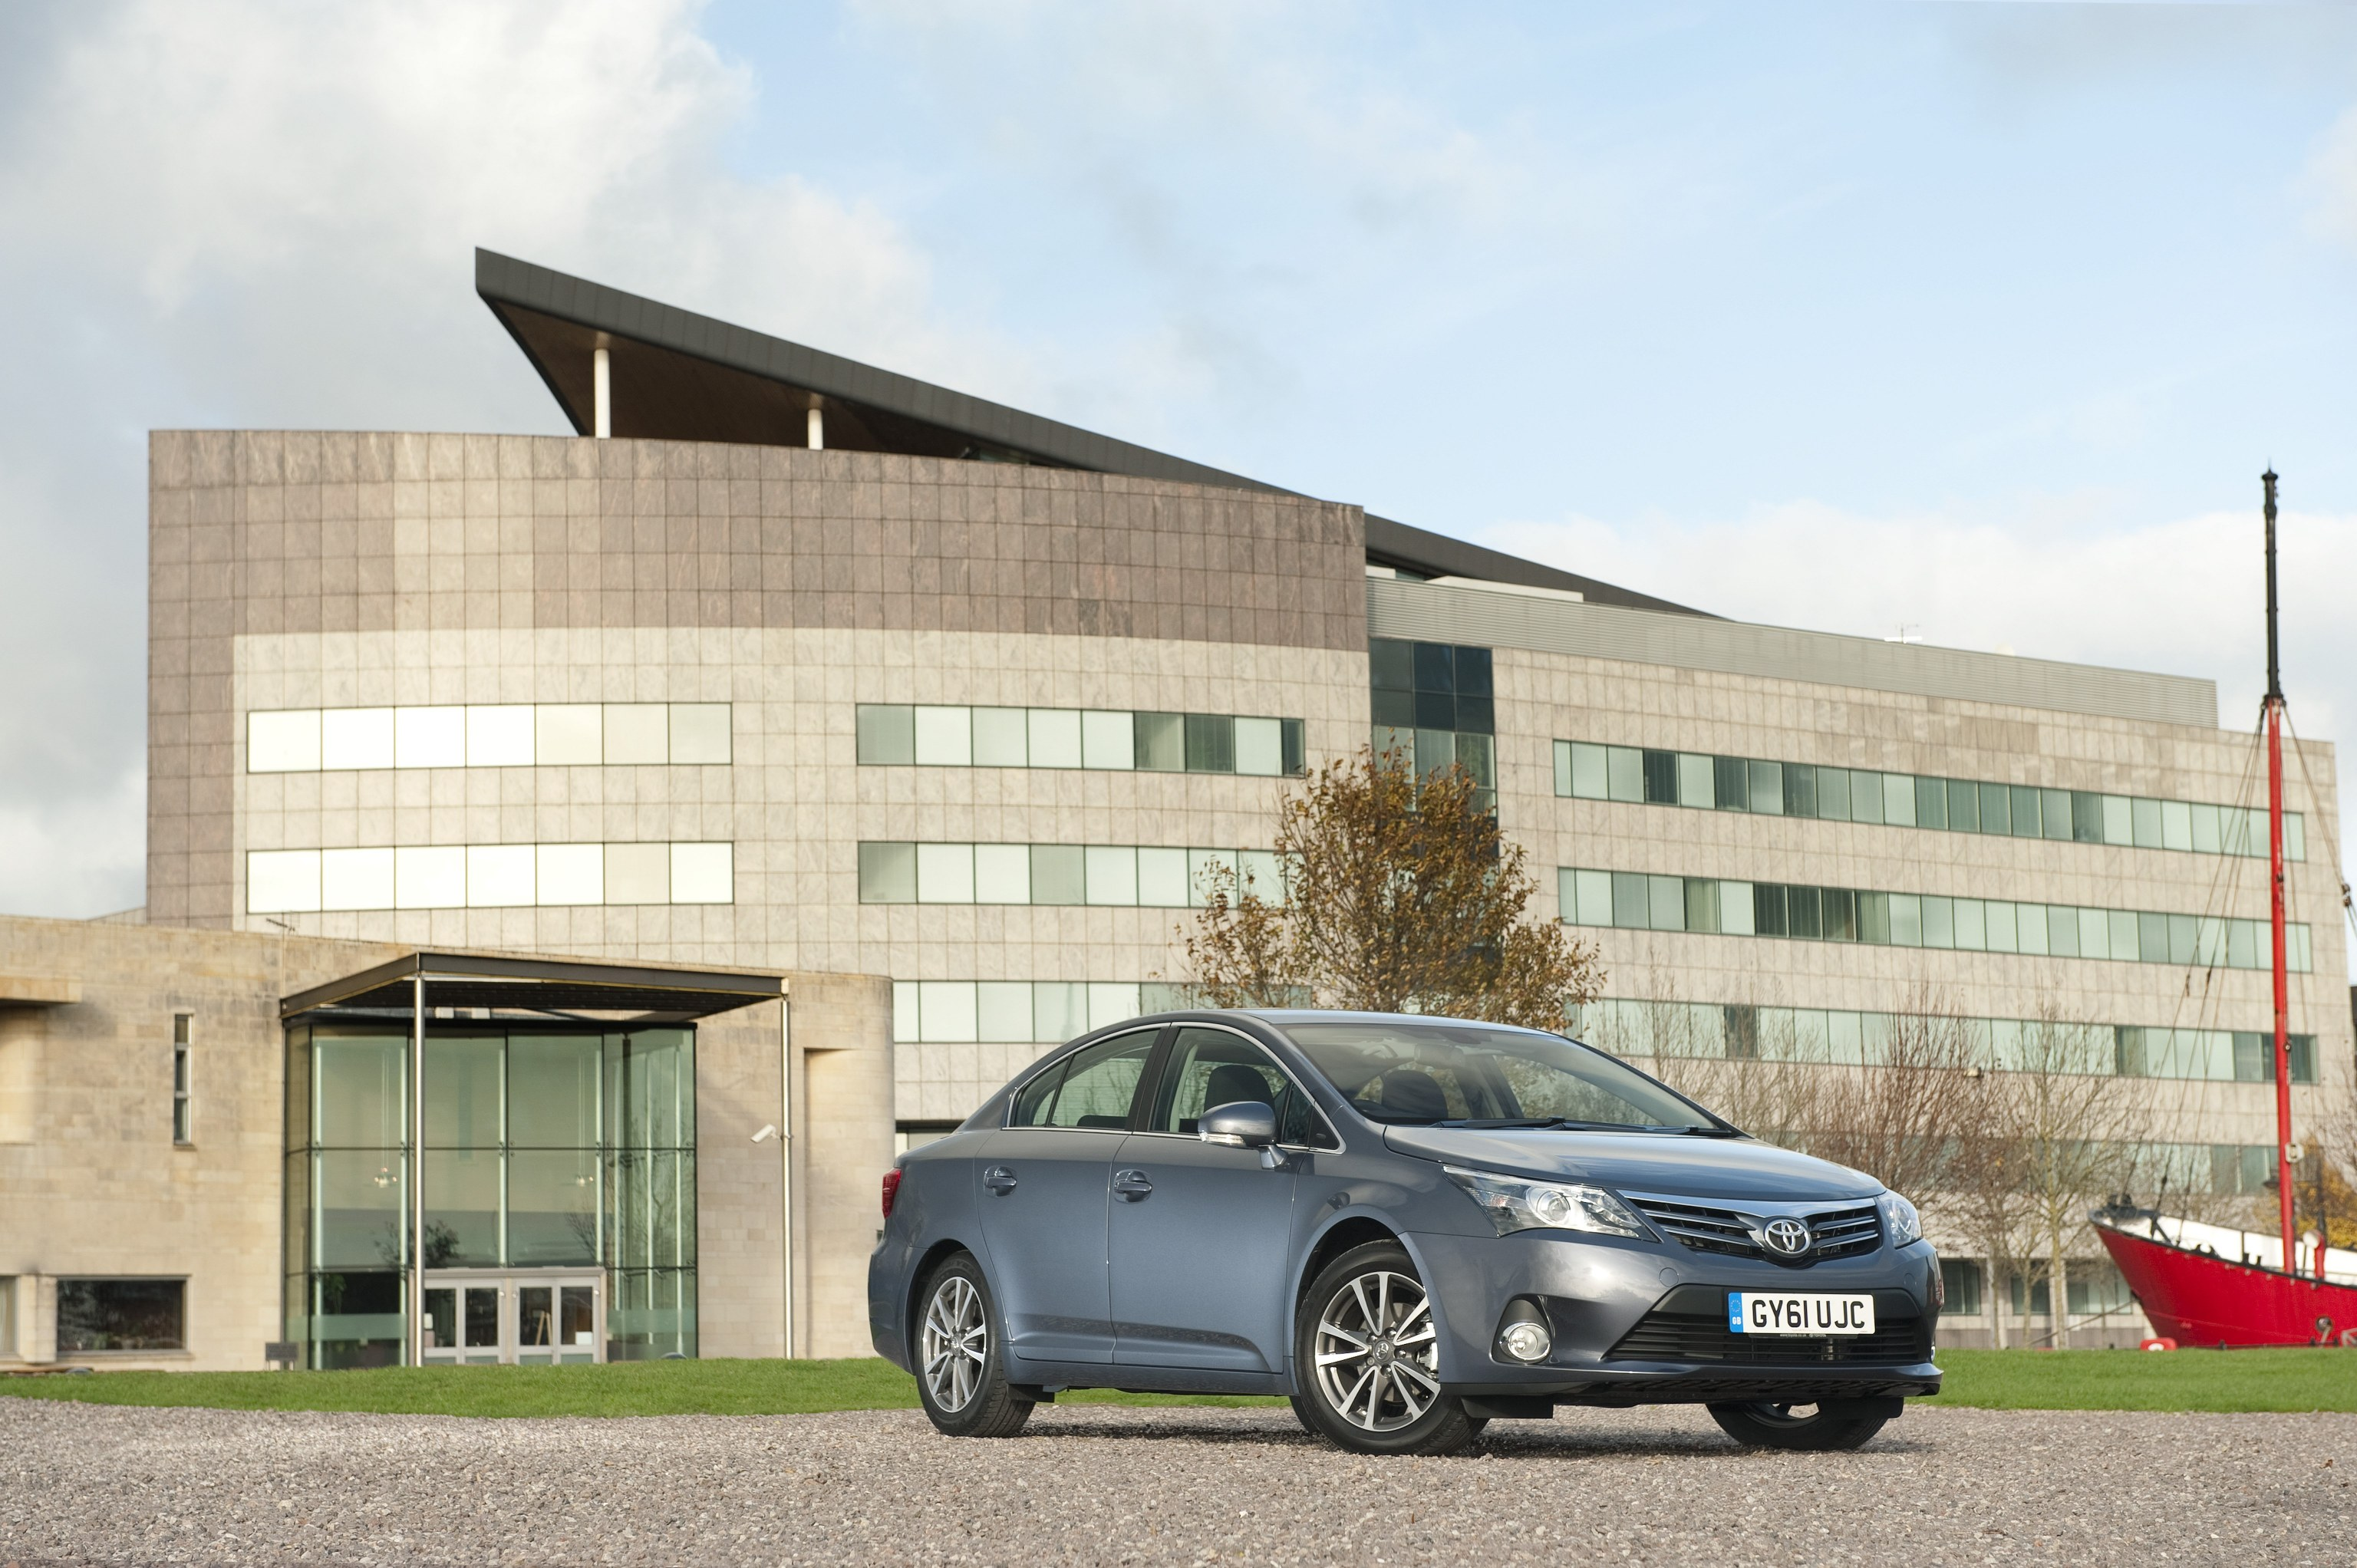 New Toyota Avensis saloon